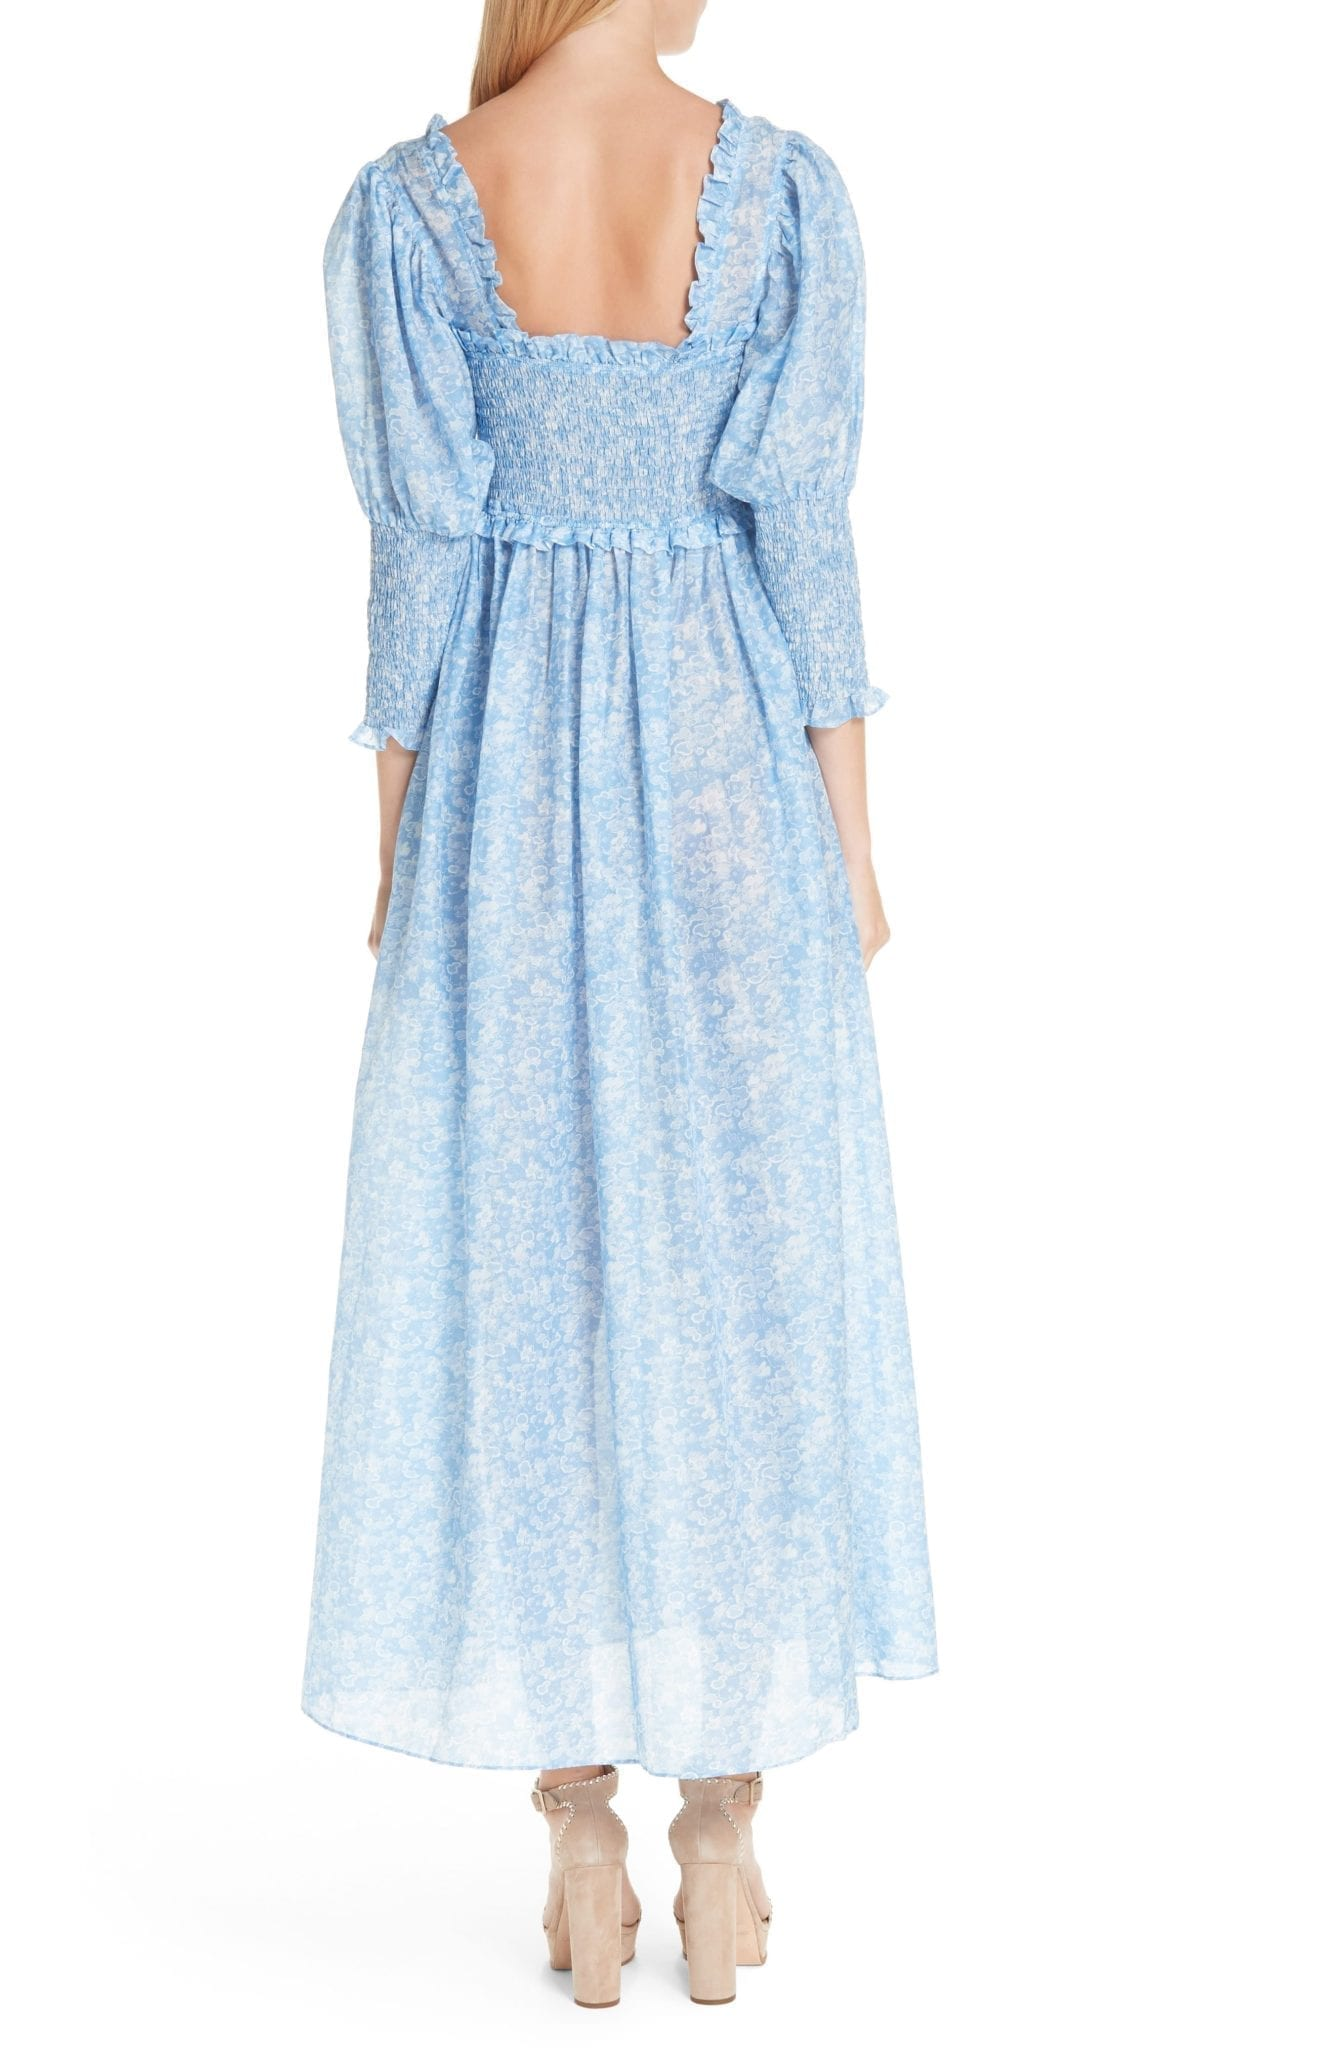 d39a7f0c GANNI Floral Smocked Maxi Serenity Blue Dress - We Select Dresses